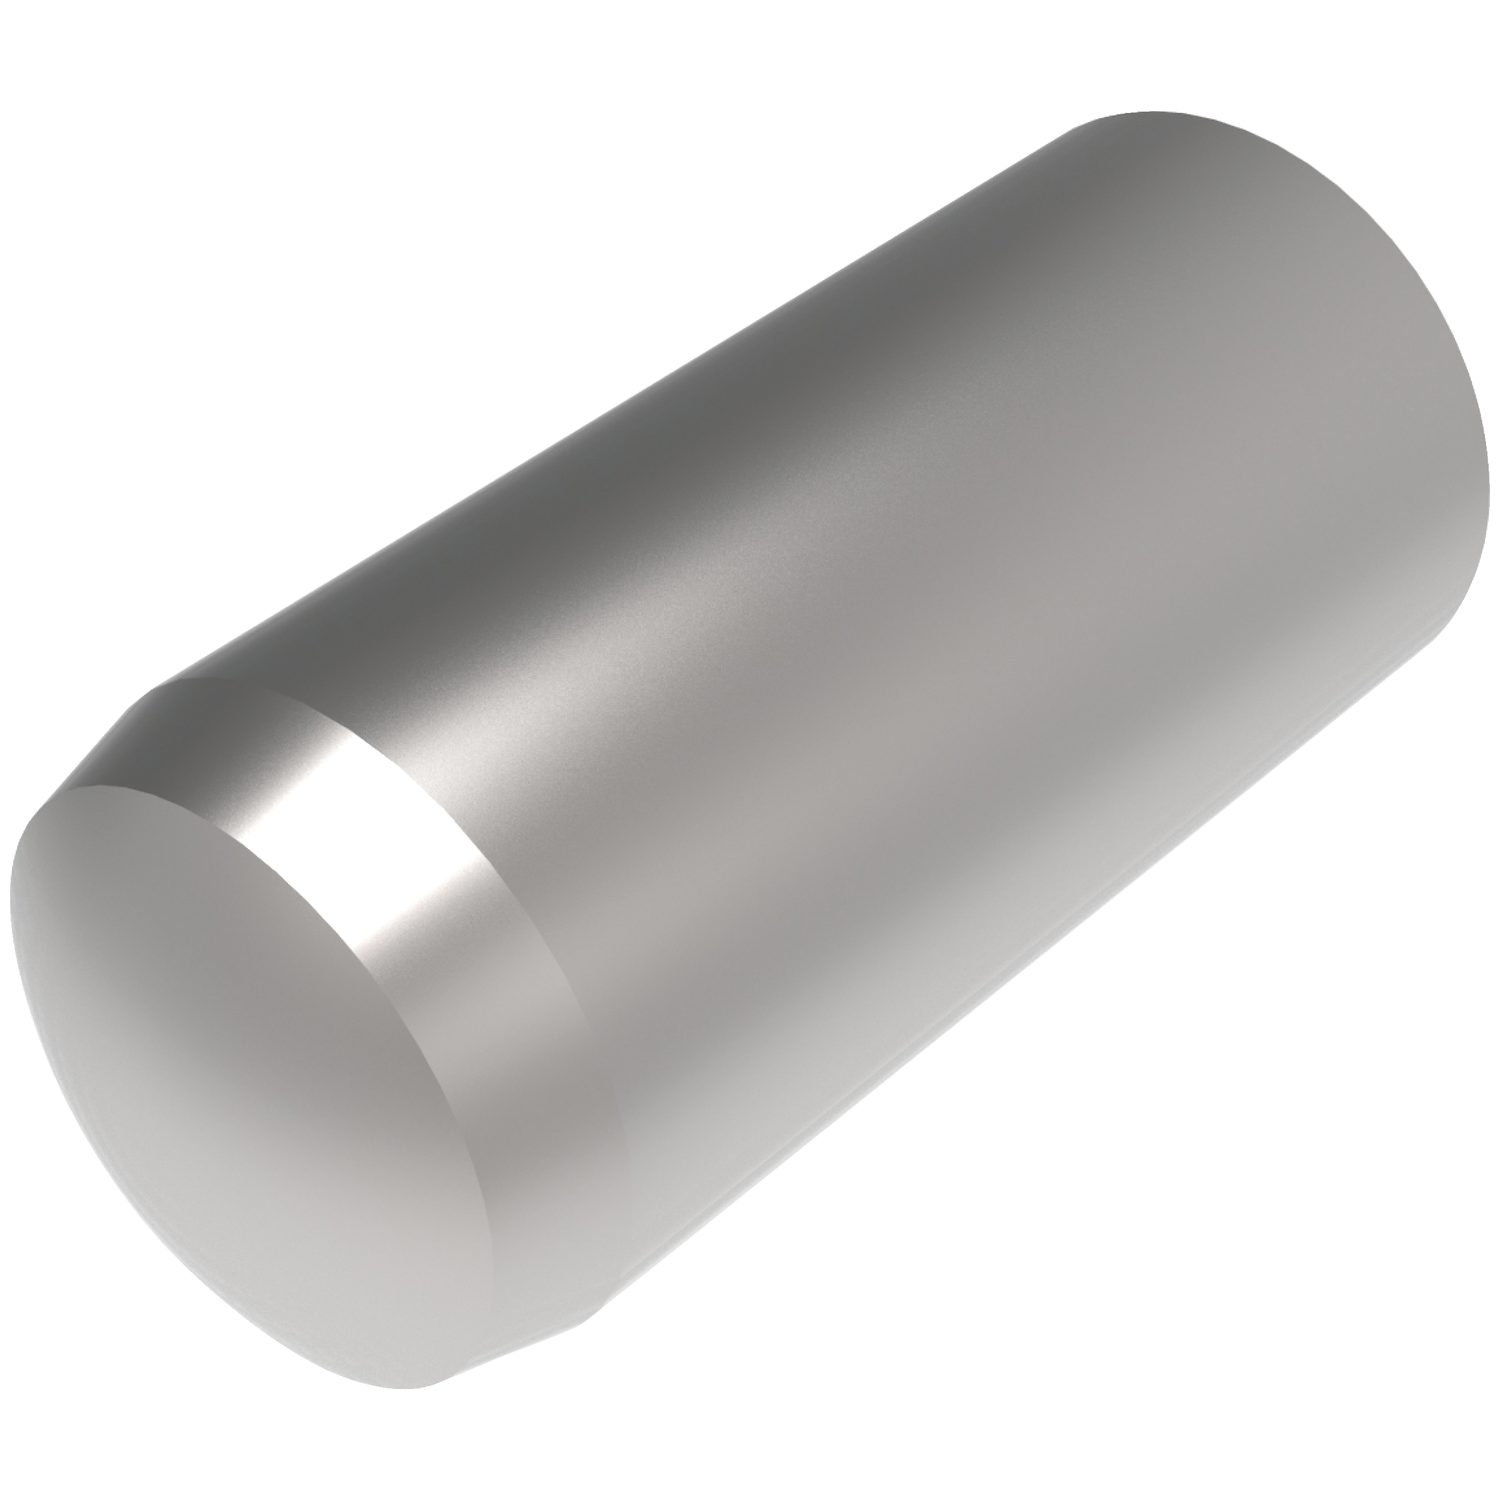 P1213 - Stainless Extractable Dowel Pins